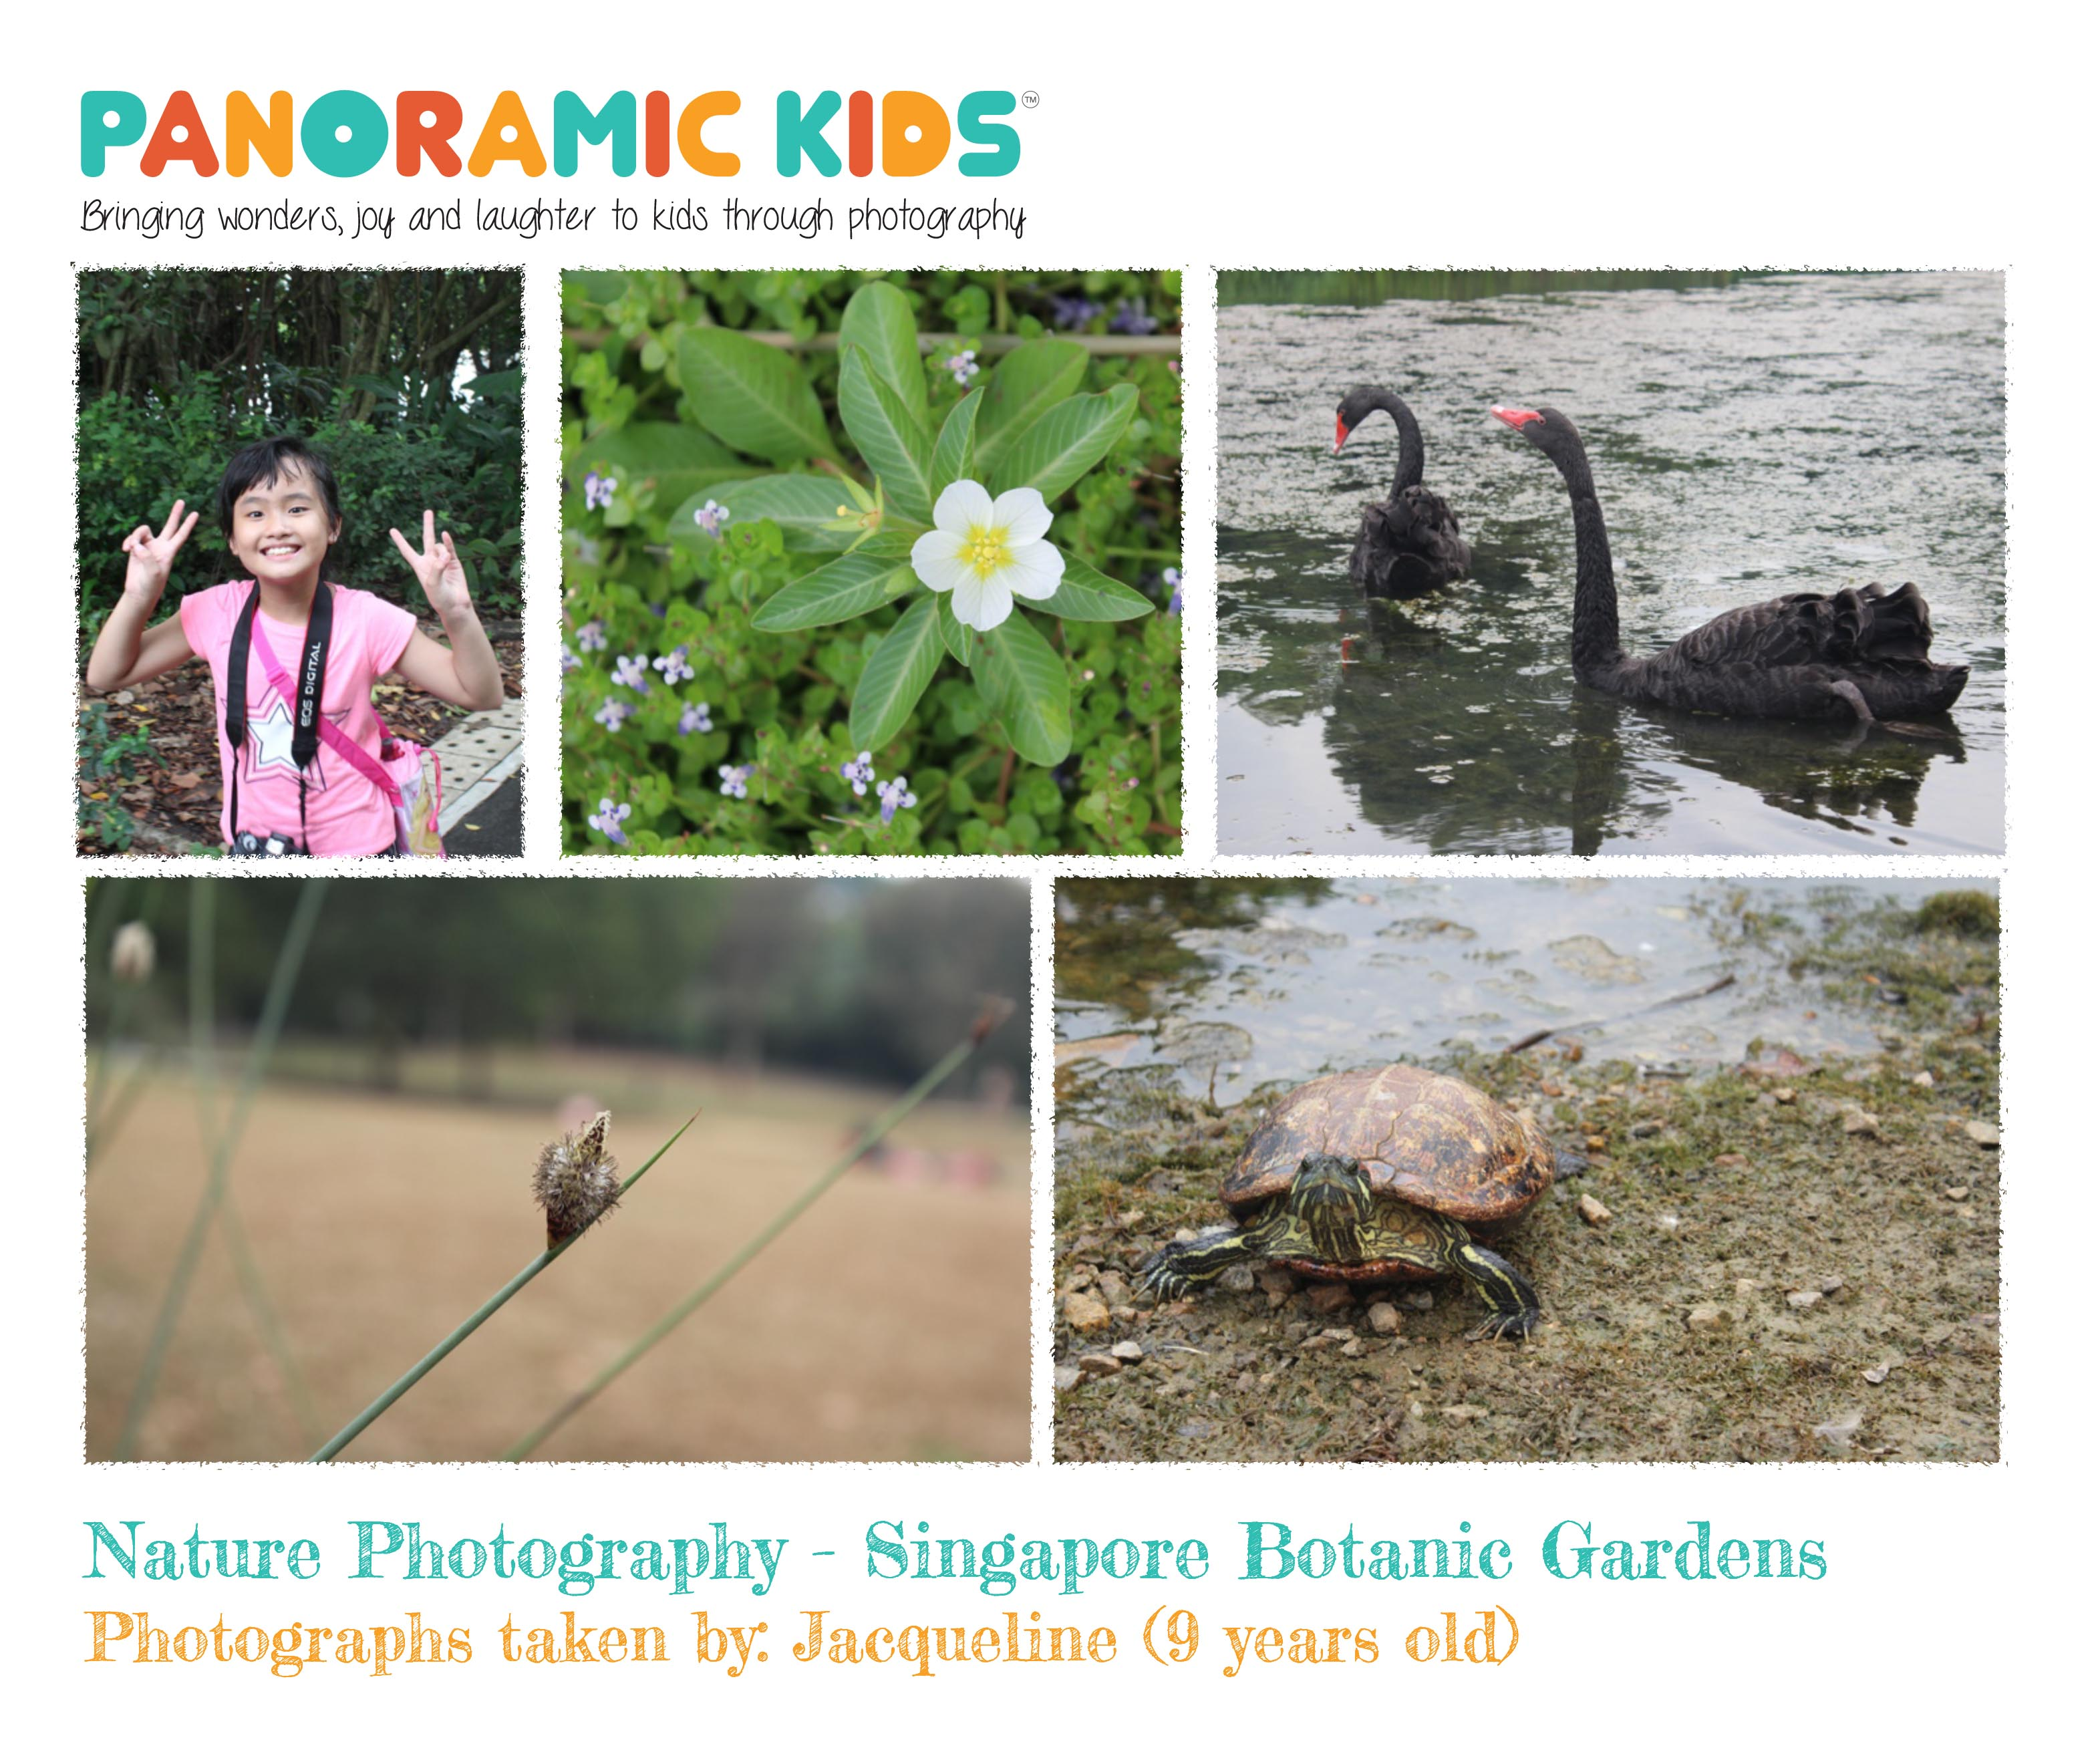 8Sept2015_NaturePhotographyShowcase